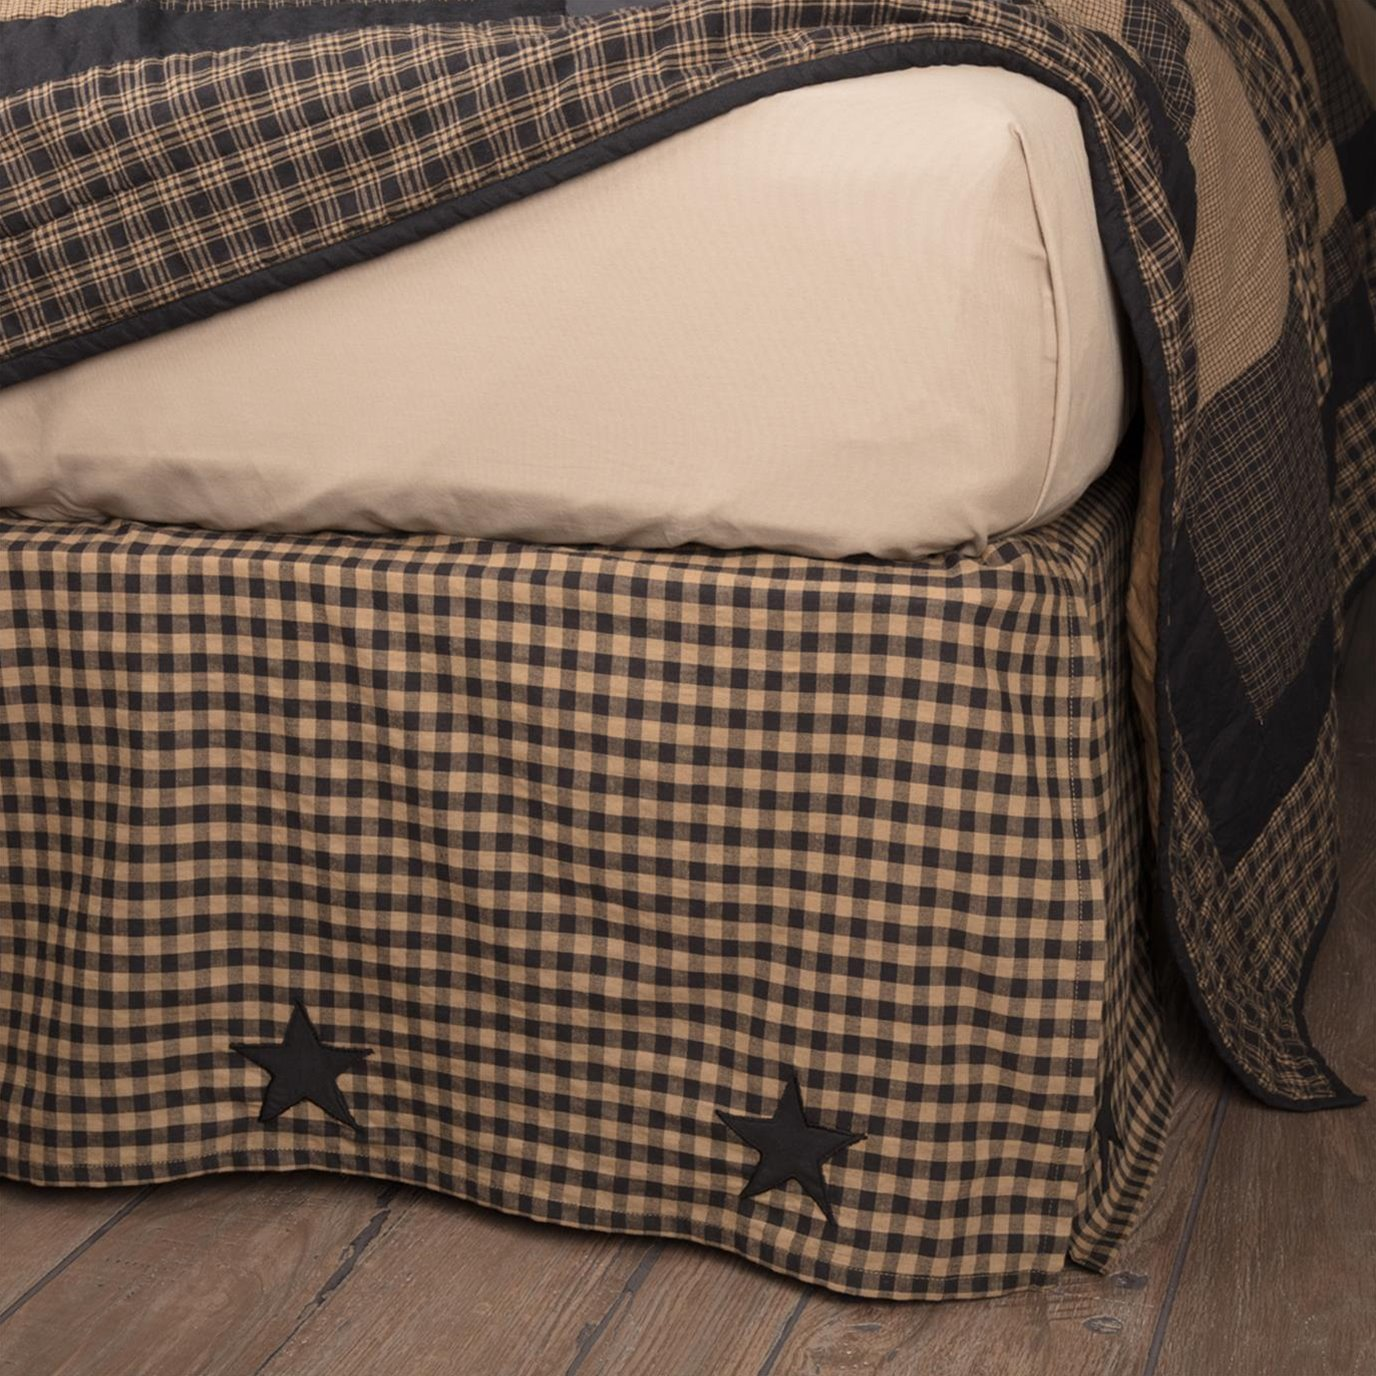 Black Check Star Queen Bed Skirt 60x80x16